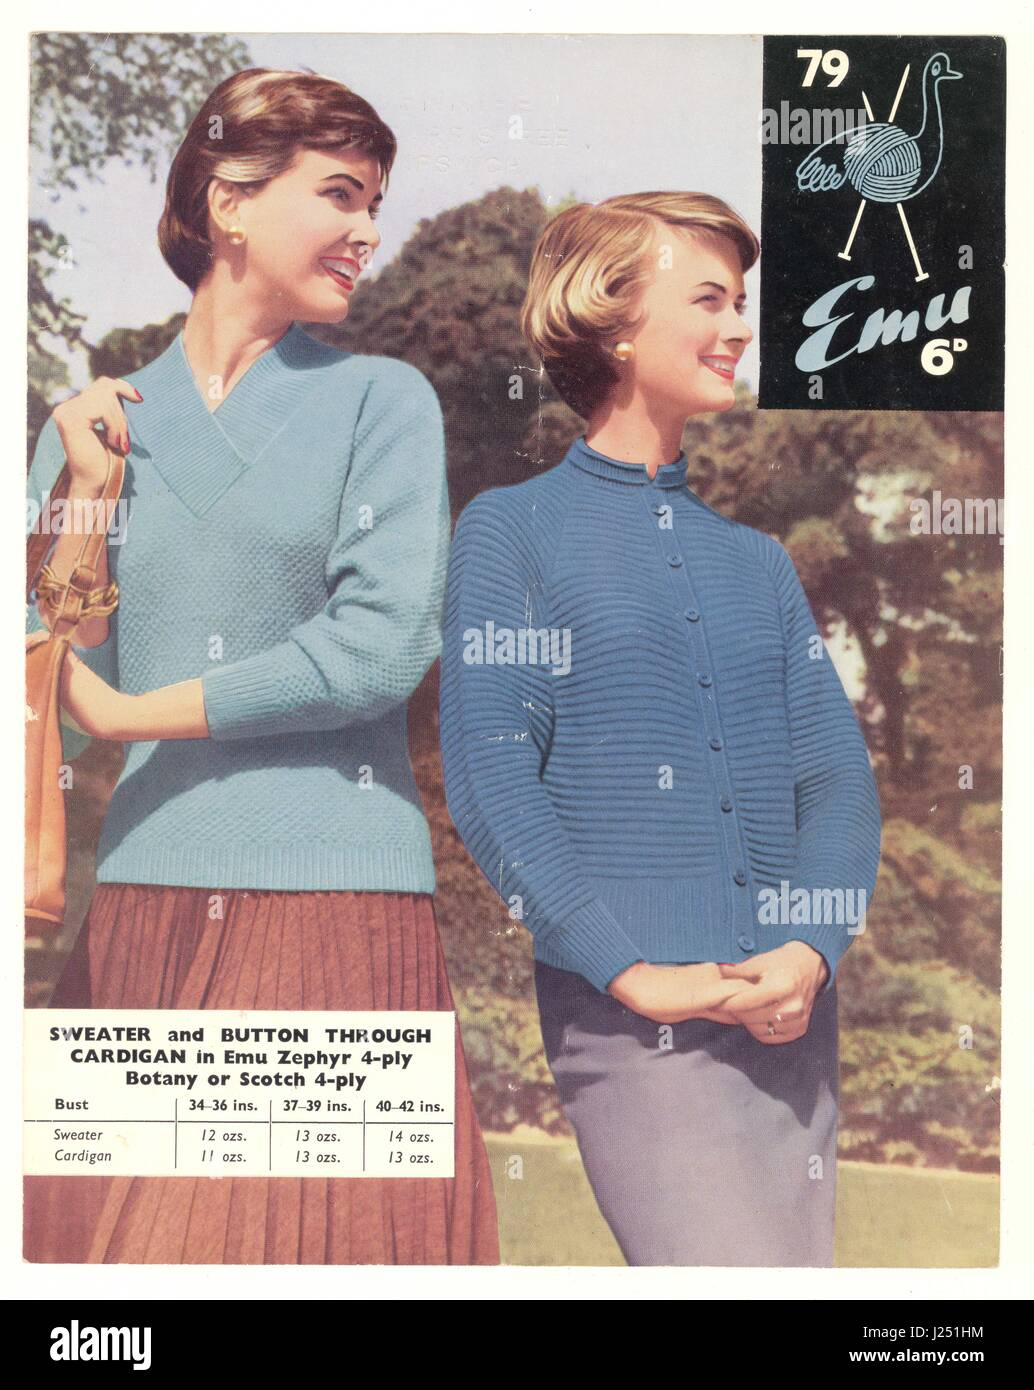 retro Emu knitting pattern from the 1950's - Stock Image